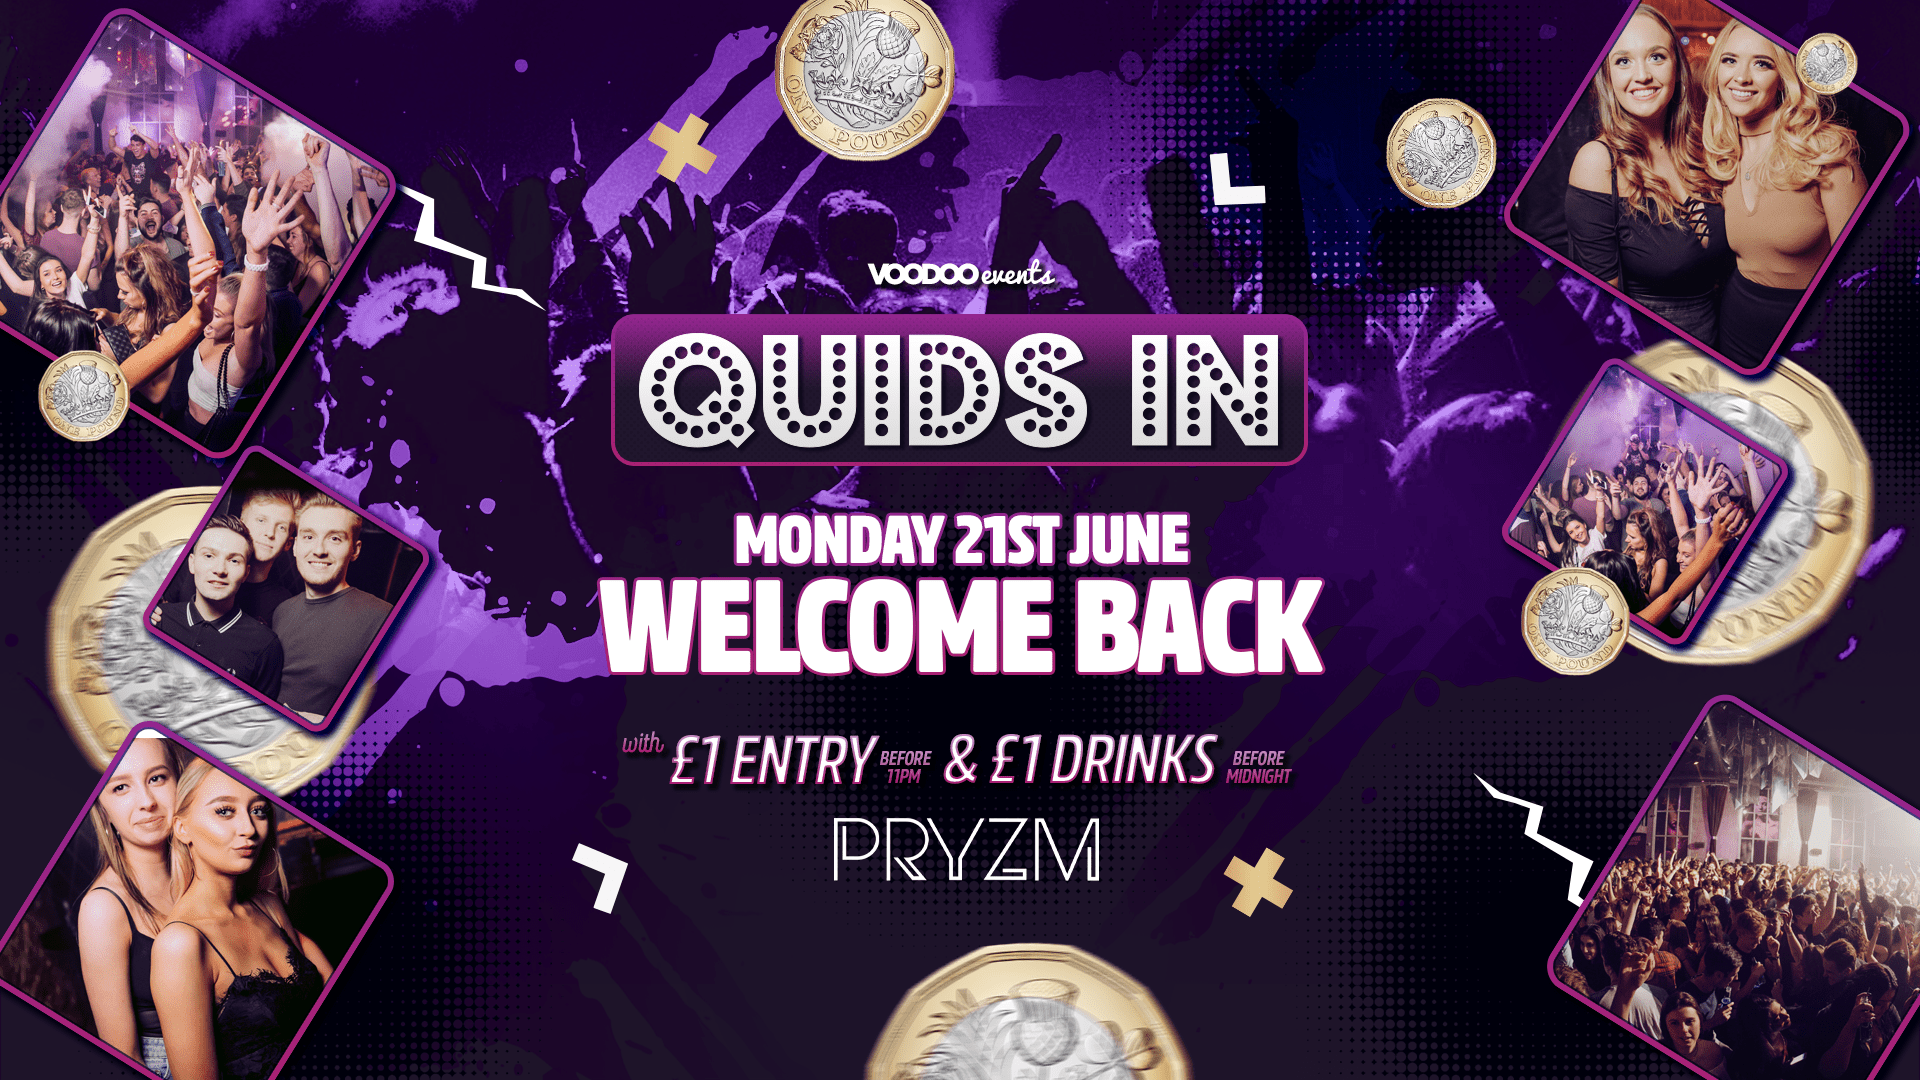 The Comeback – Quids In Mondays at PRYZM Opening party – 19th July